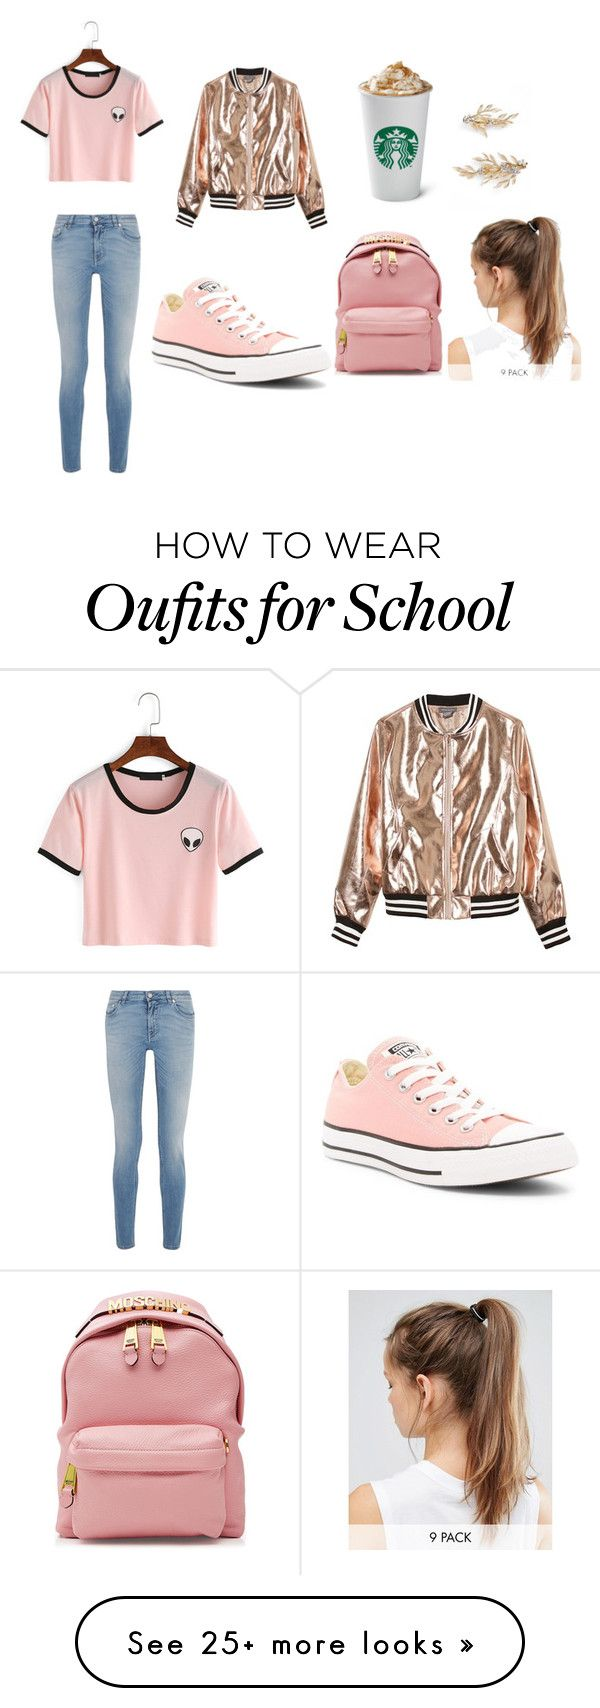 """going to school"" by raniah-aljumaili on Polyvore featuring Givenchy, Sans Souci, Converse, Moschino, NIKE, Brides & Hairpins and Pink"